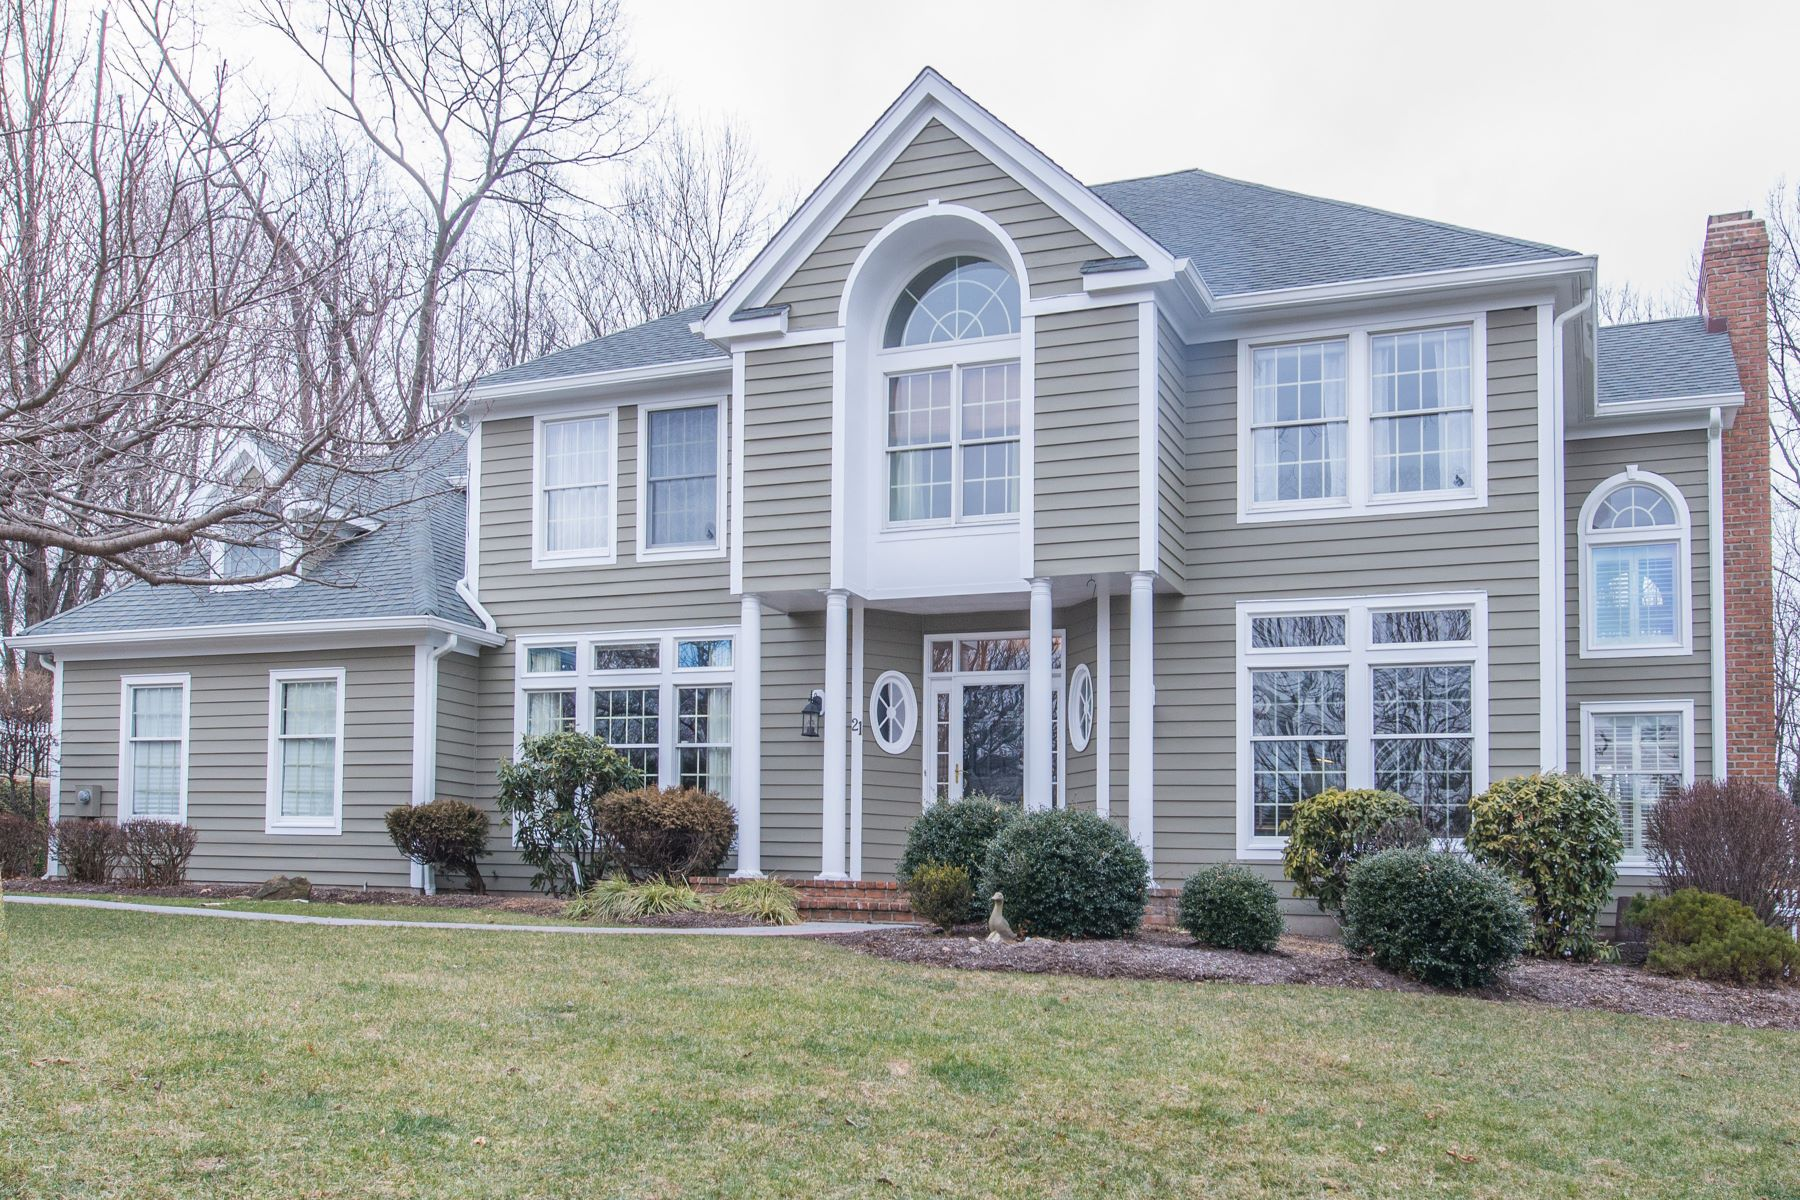 Single Family Home for Sale at Desirable Shadow Ridge Colonial 21 Ammerman Way, Chester, New Jersey 07930 United States